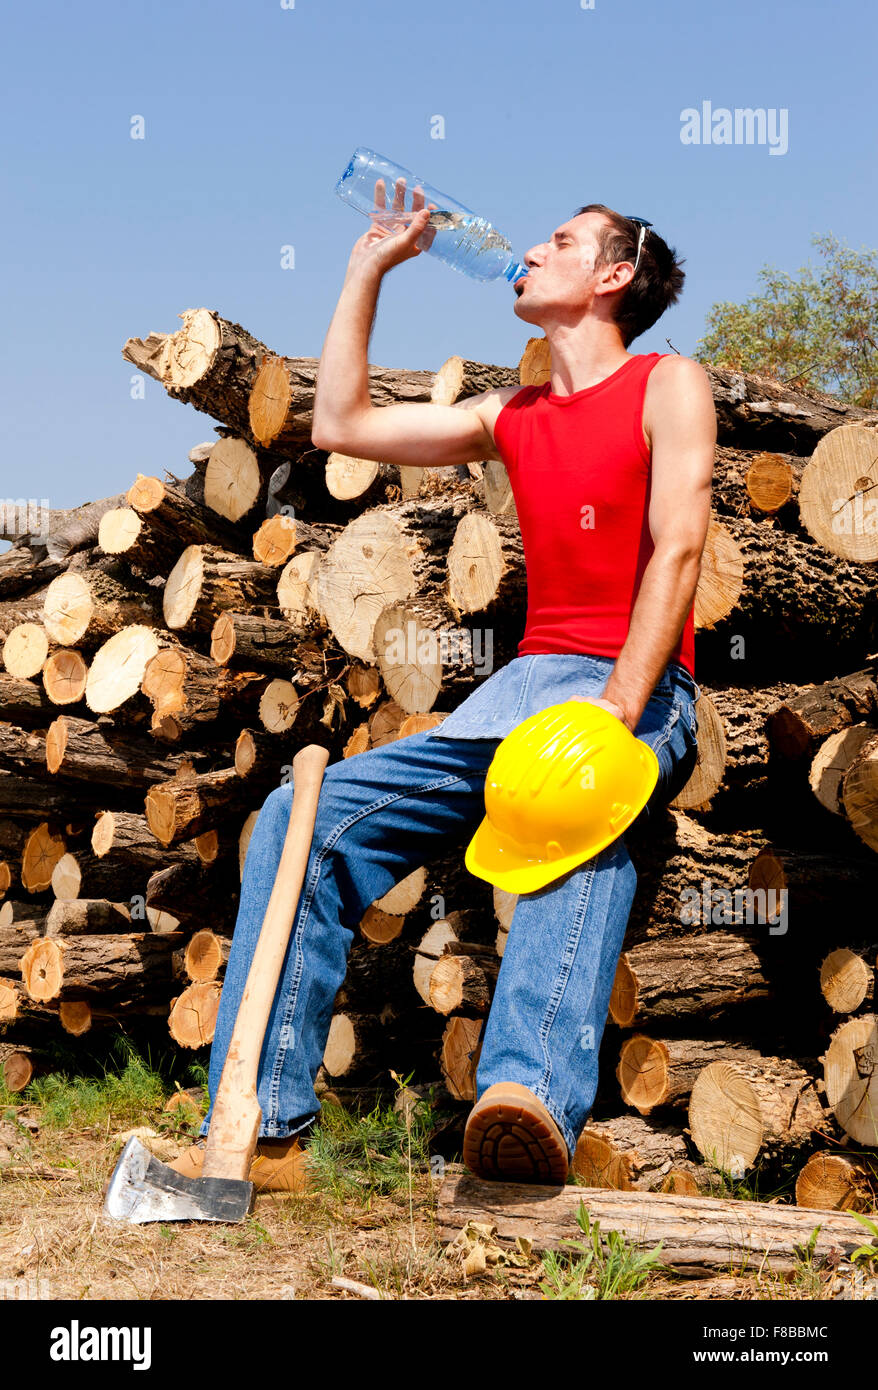 woodcutter cuts the tree in the forest - Stock Image